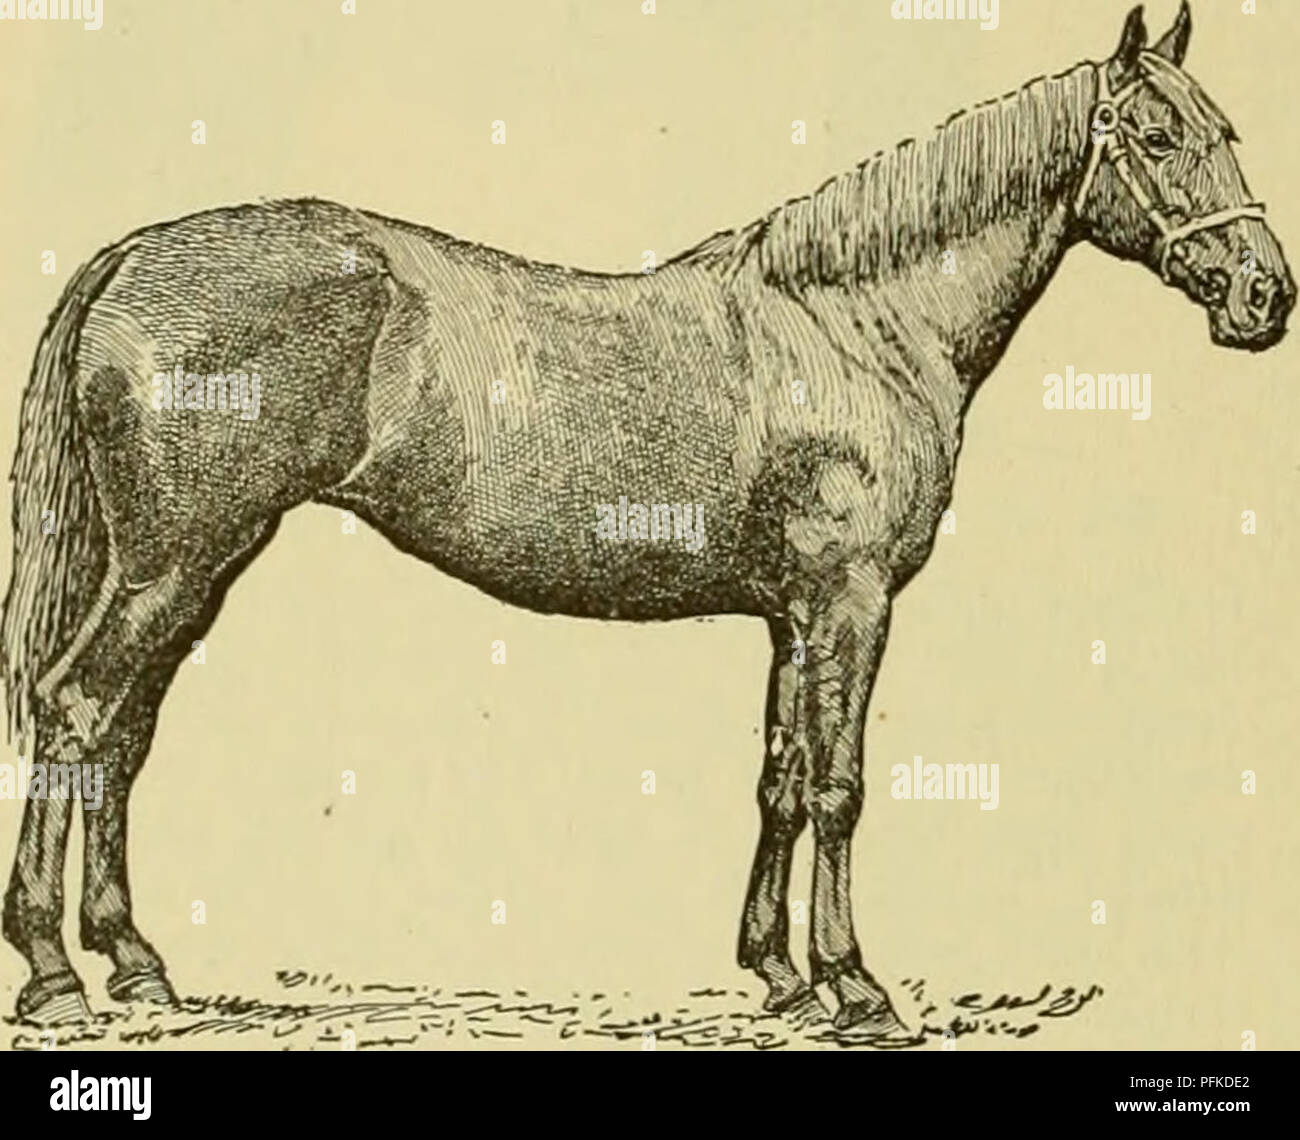 Cyclopedia Of Farm Animals Domestic Animals Animal Products 454 Horse Horse As He Can Obtain From Job Masters A Large Sum For A Pair Of These Overgrown Animals He Will Do